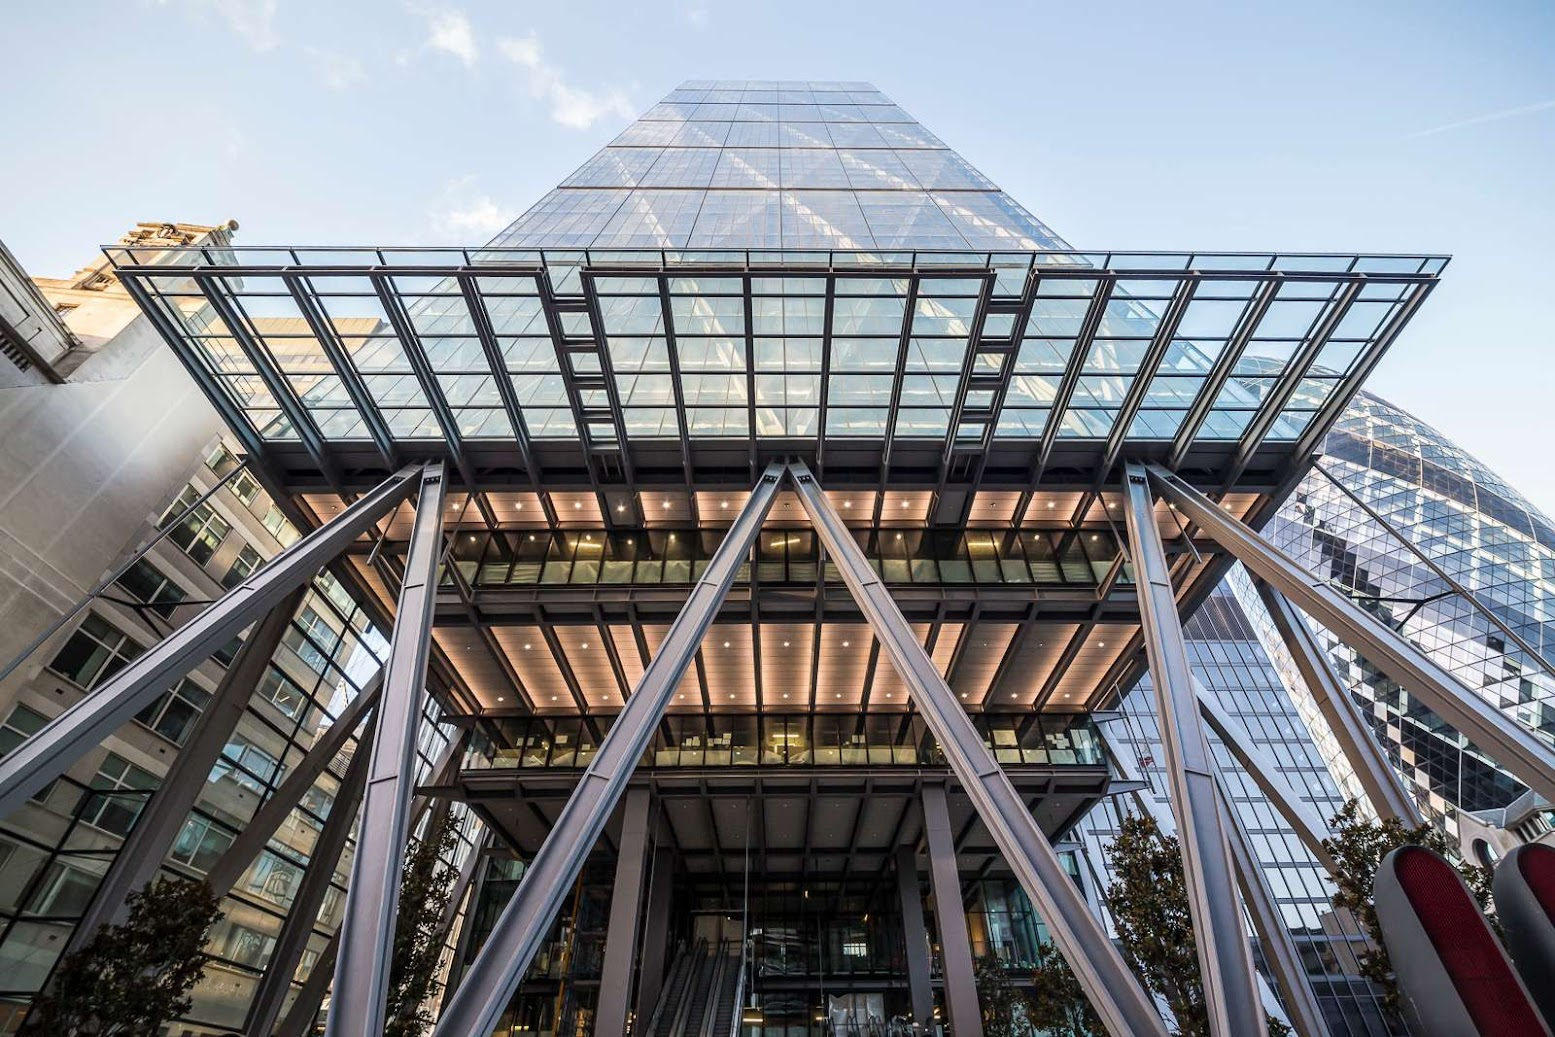 Londra, Regno Unito: [THE LEADENHALL BUILDING BY ROGERS STIRK HARBOUR + PARTNERS]